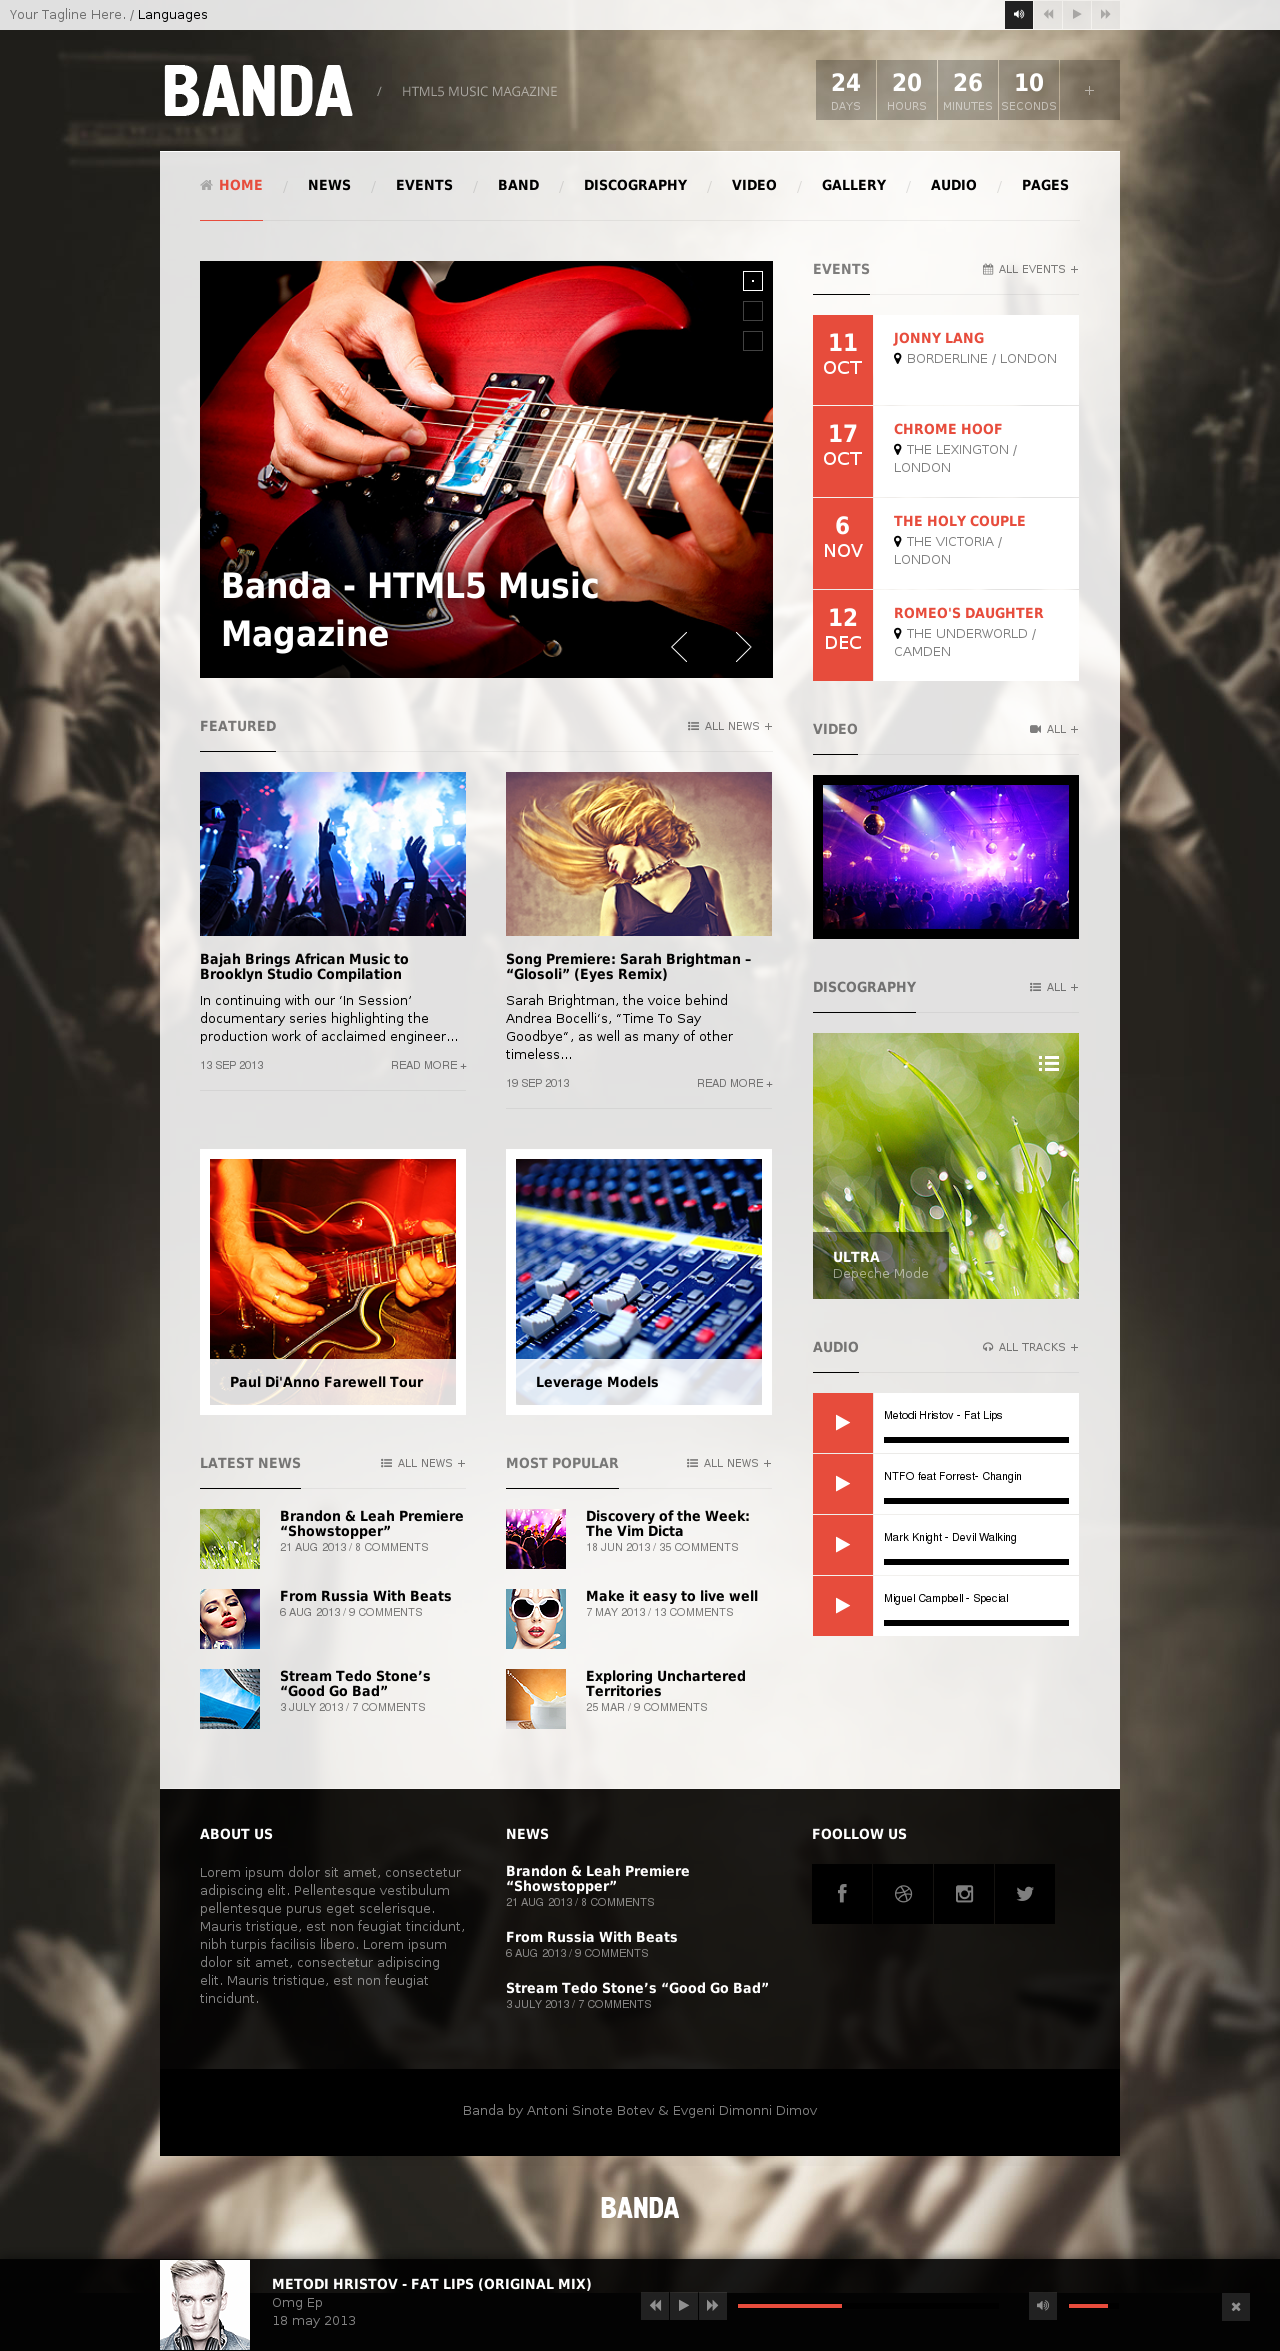 Banda - HTML5 Music website template